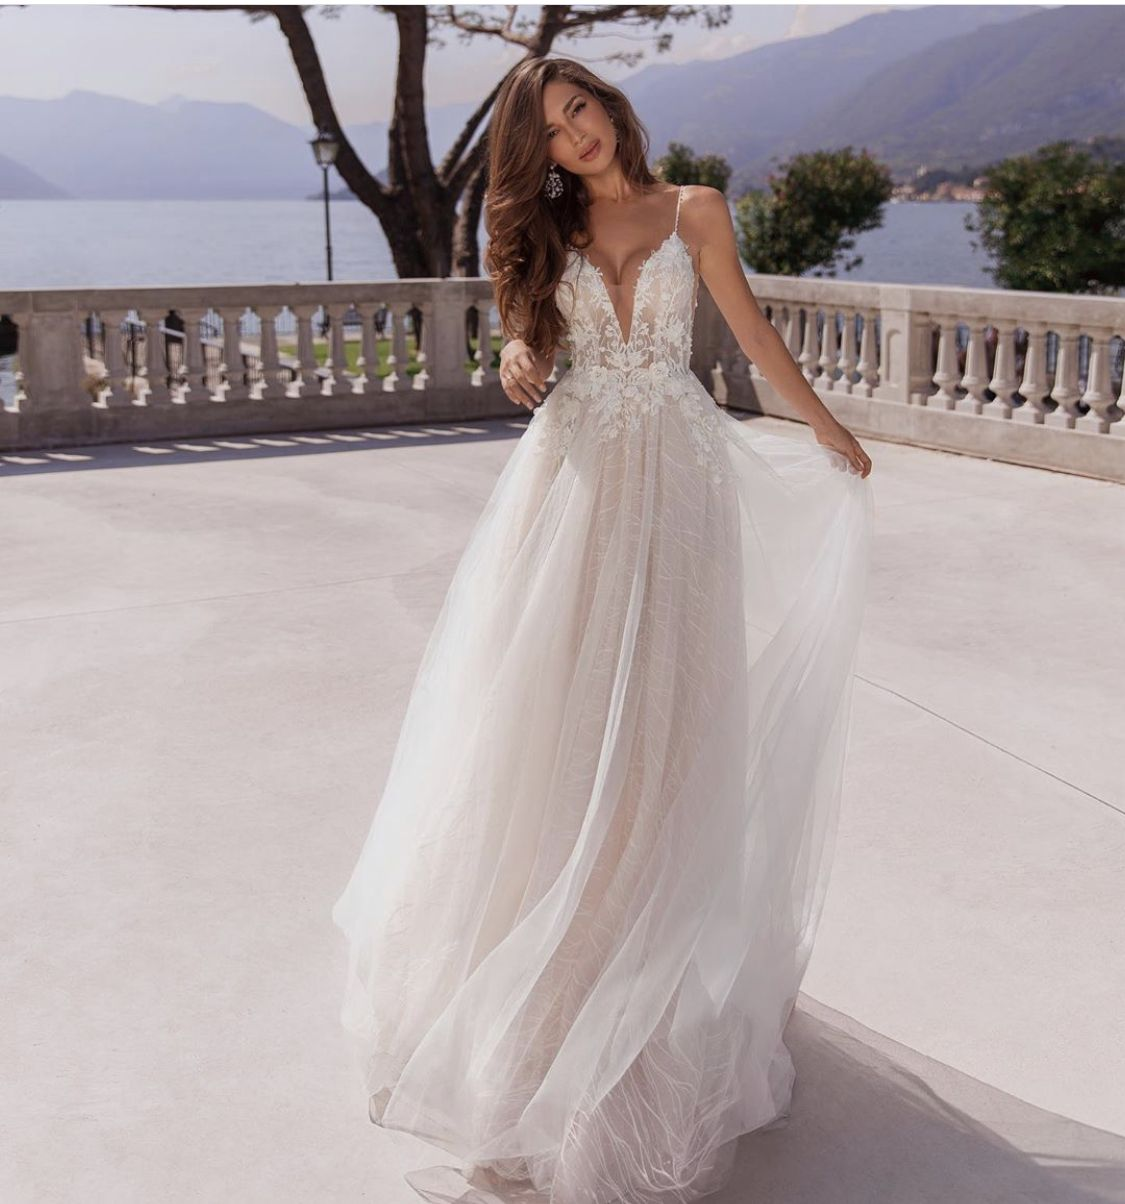 Viero Bridal Flagship Boutiques Wedding Dress Couture Dreamy Gowns Wedding Dresses